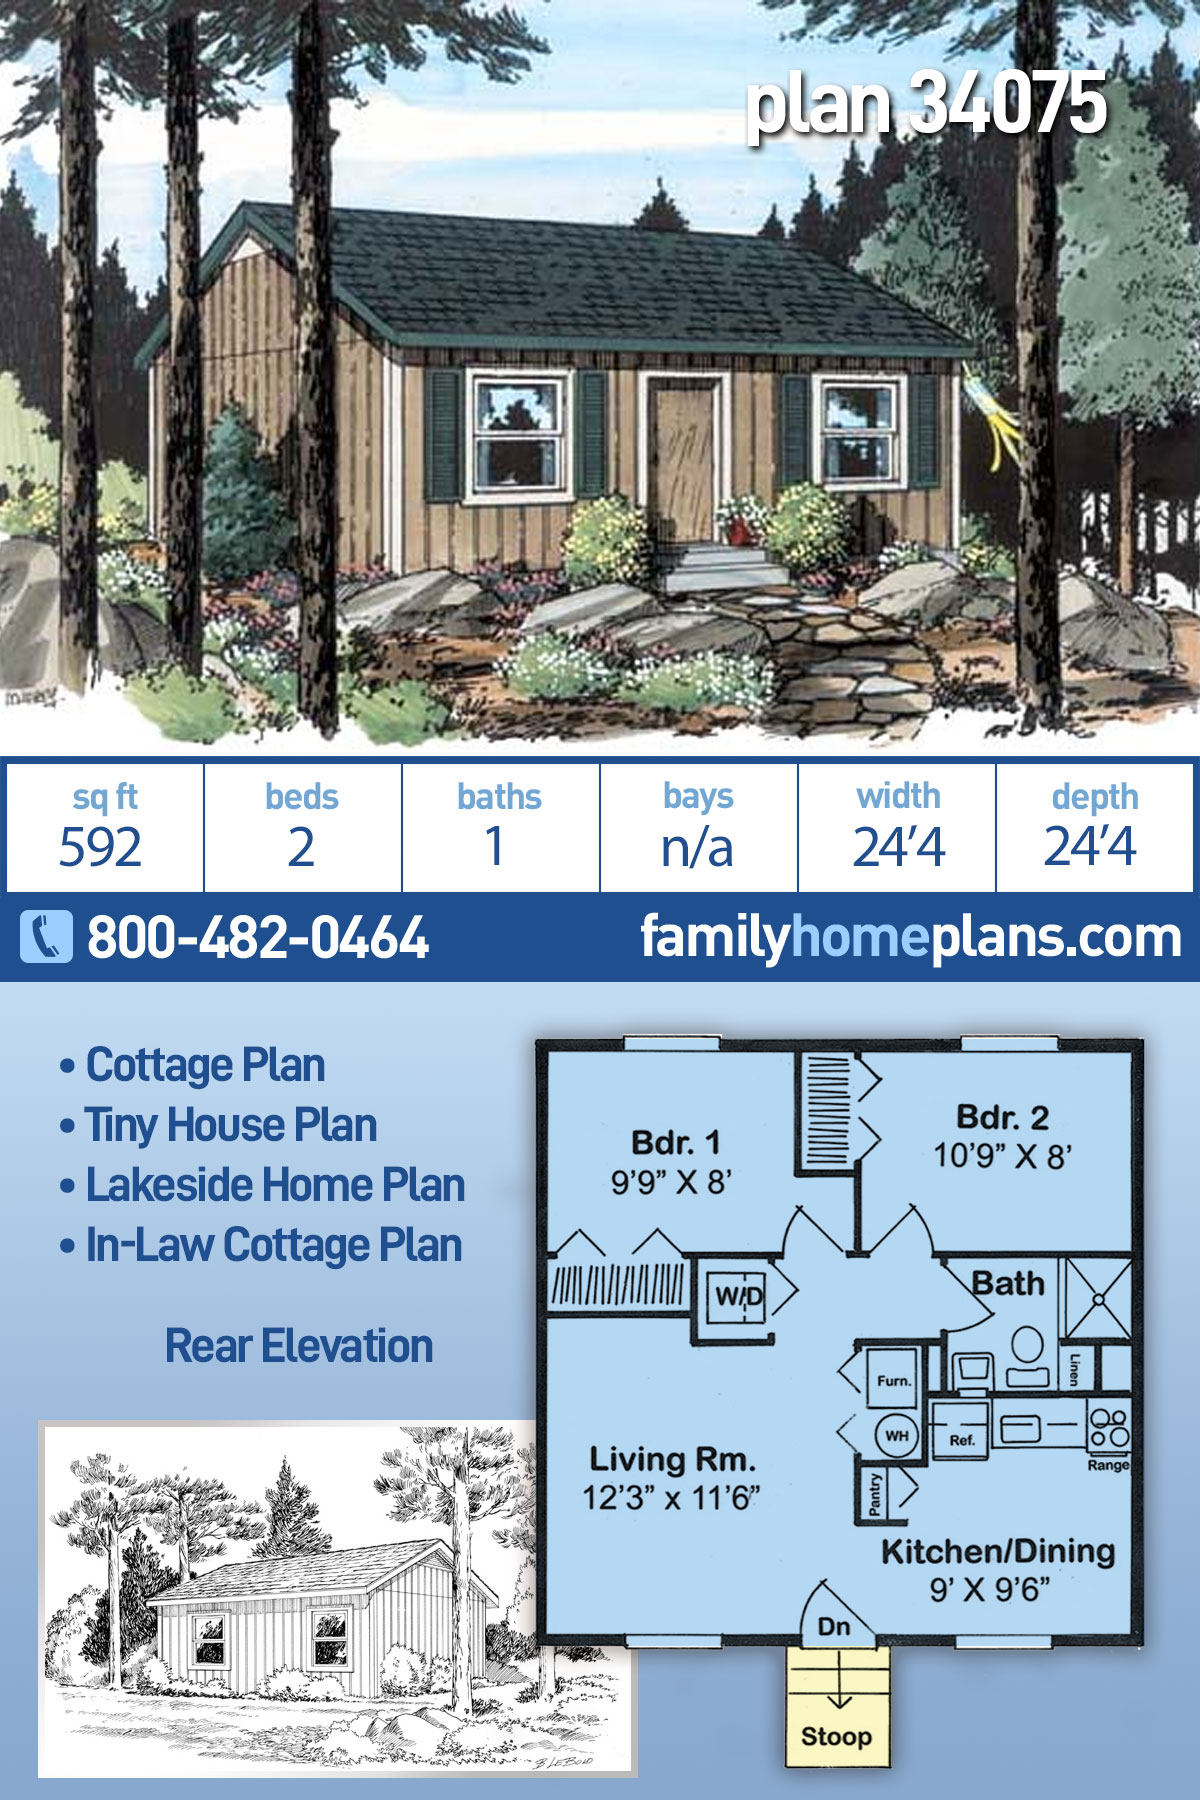 Cabin, Cottage, Traditional House Plan 34075 with 2 Beds, 1 Baths